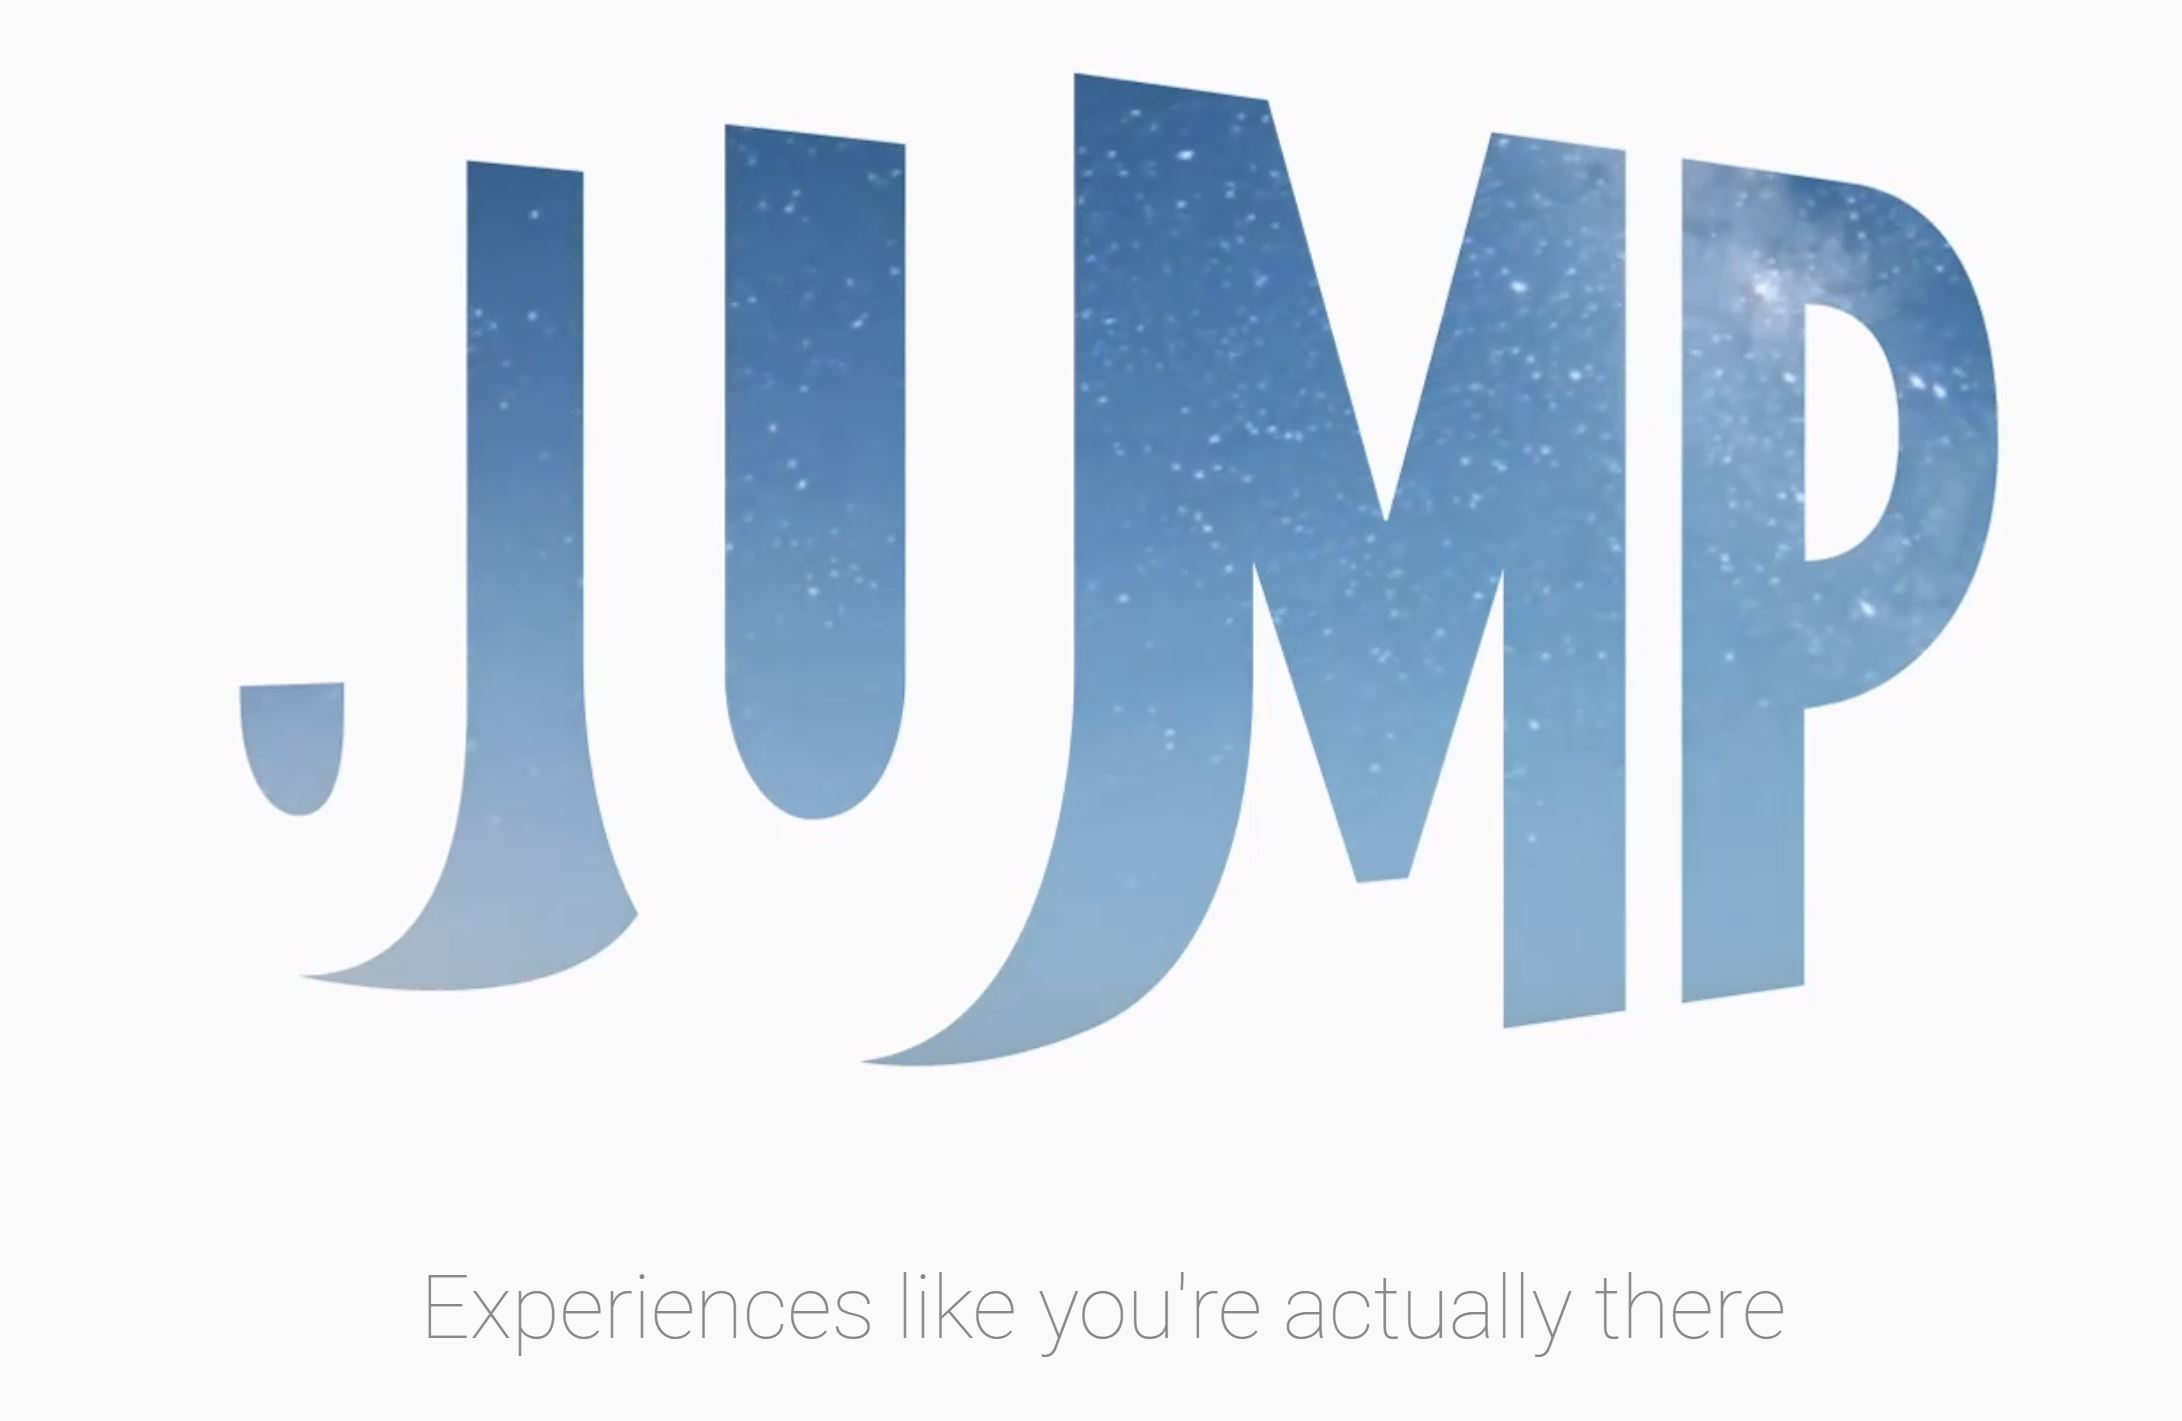 Google is shutting down the Jump VR platform in June